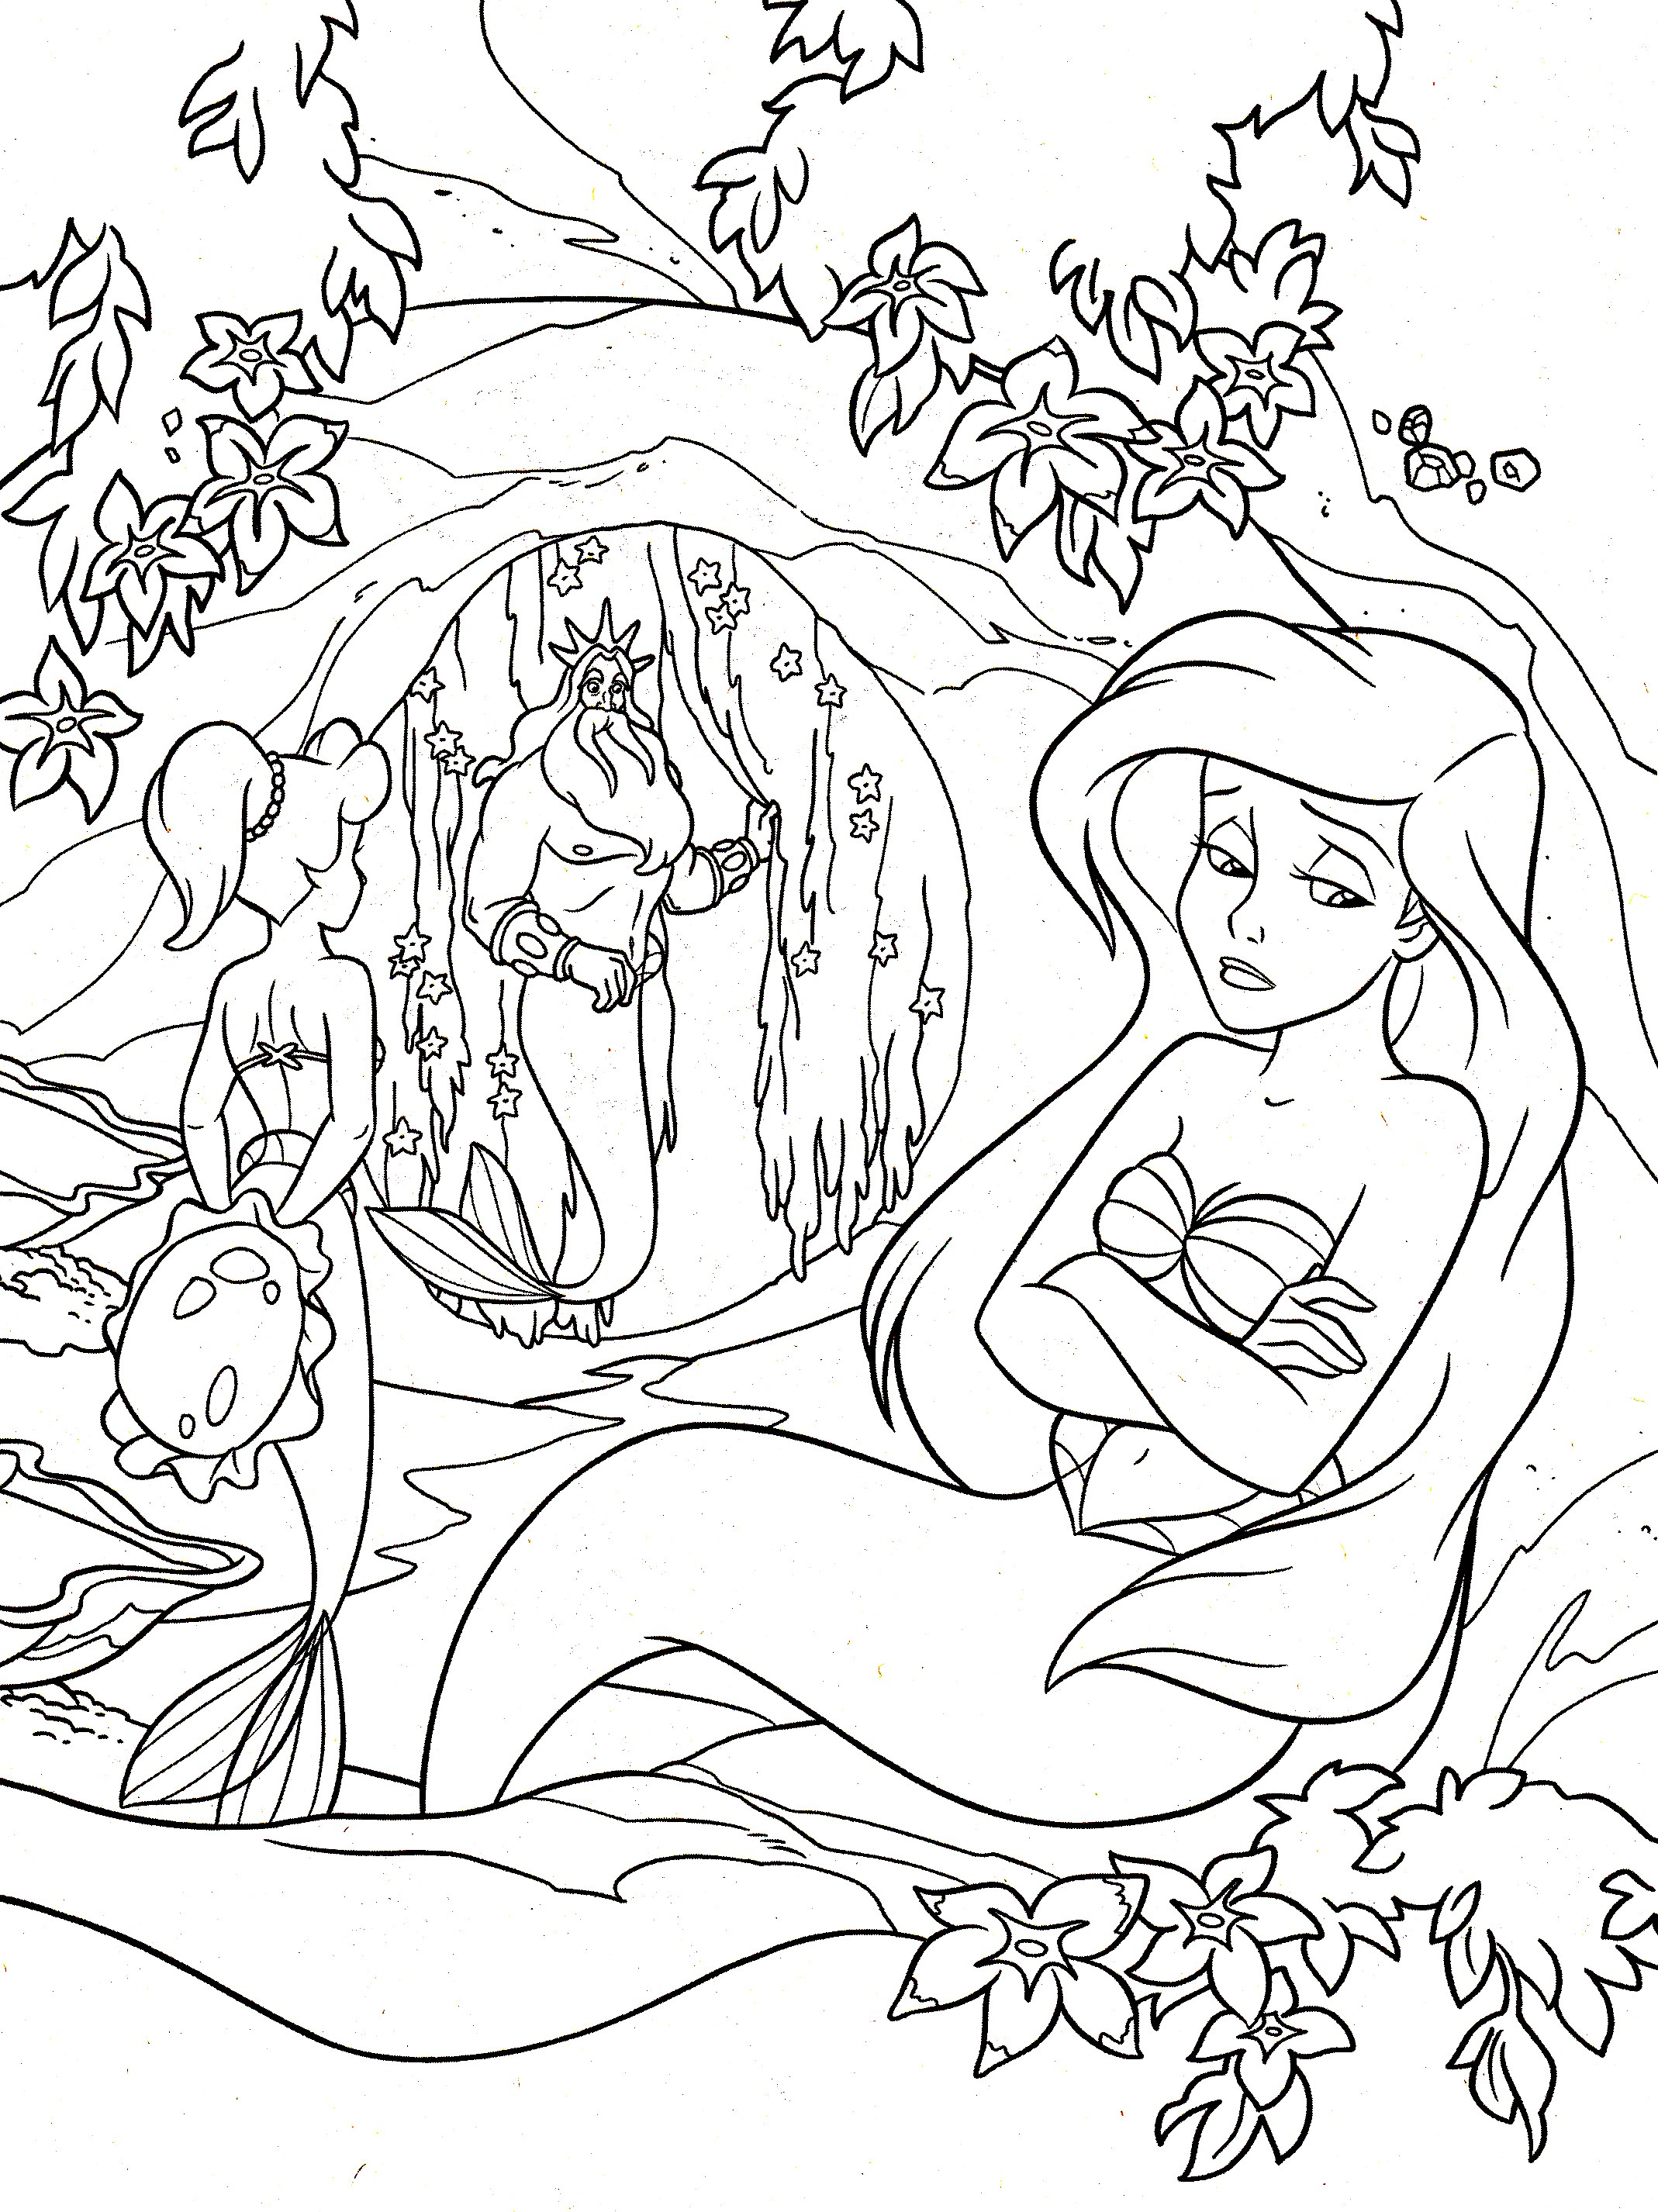 Ariel the little mermaid - Return to childhood Adult Coloring Pages